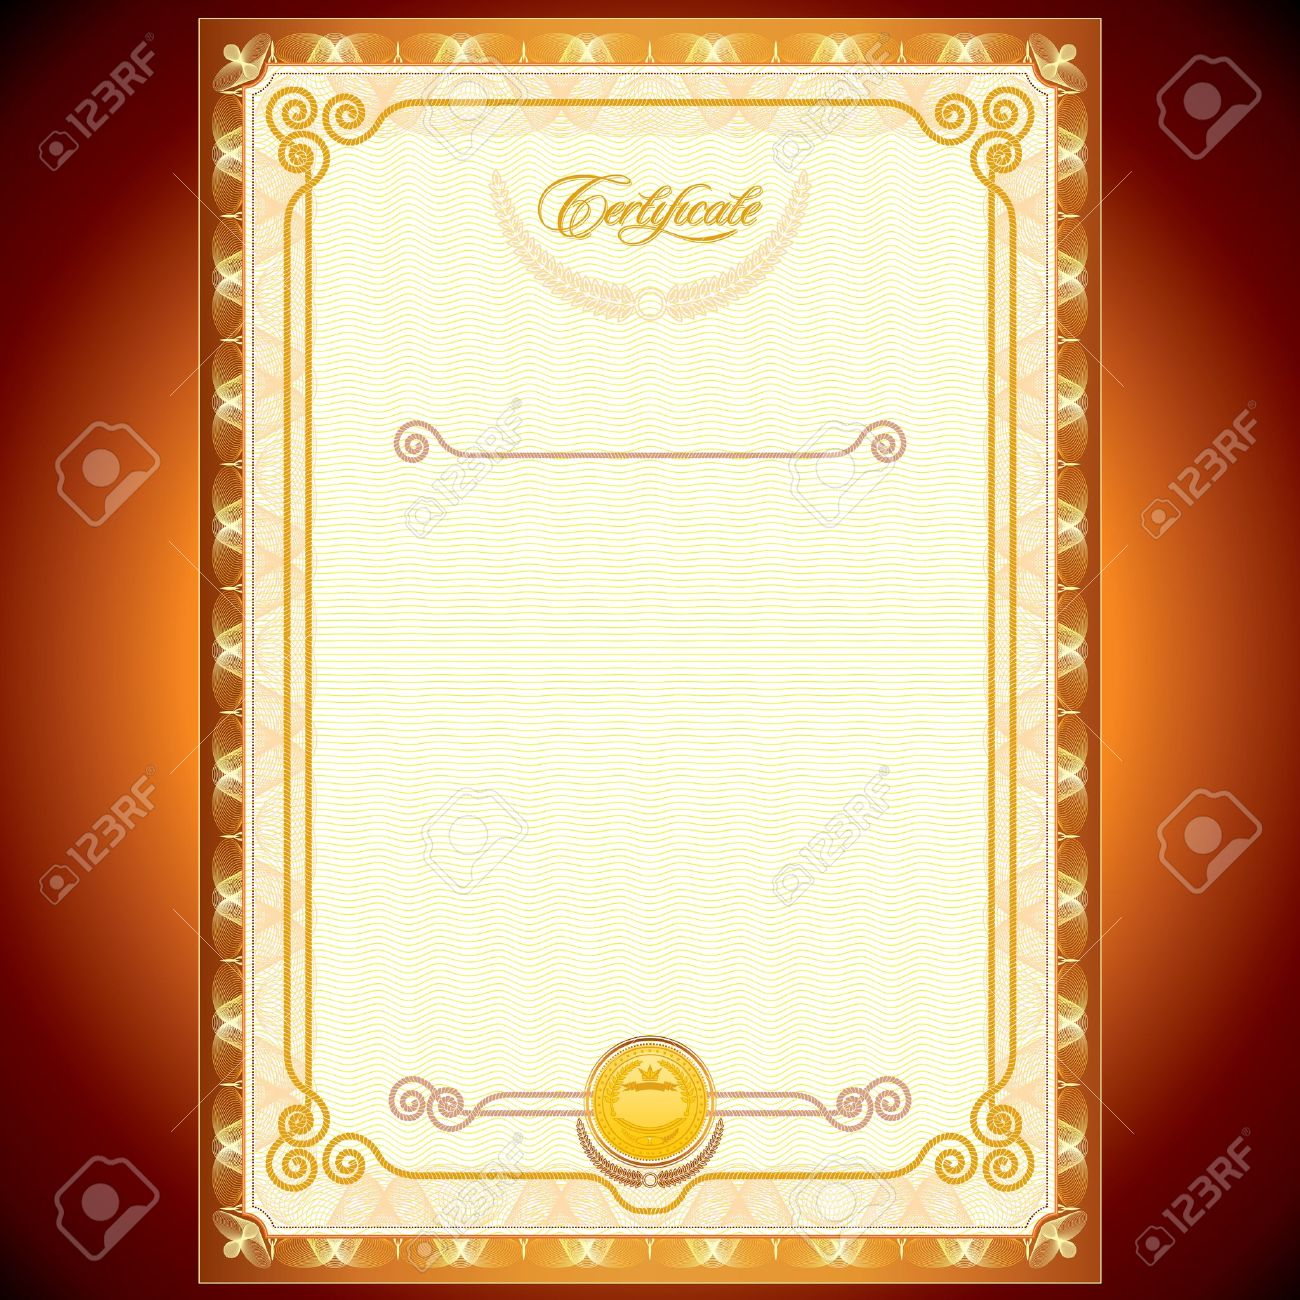 Blank Golden Certificate Template Or Your Design Royalty Free ...